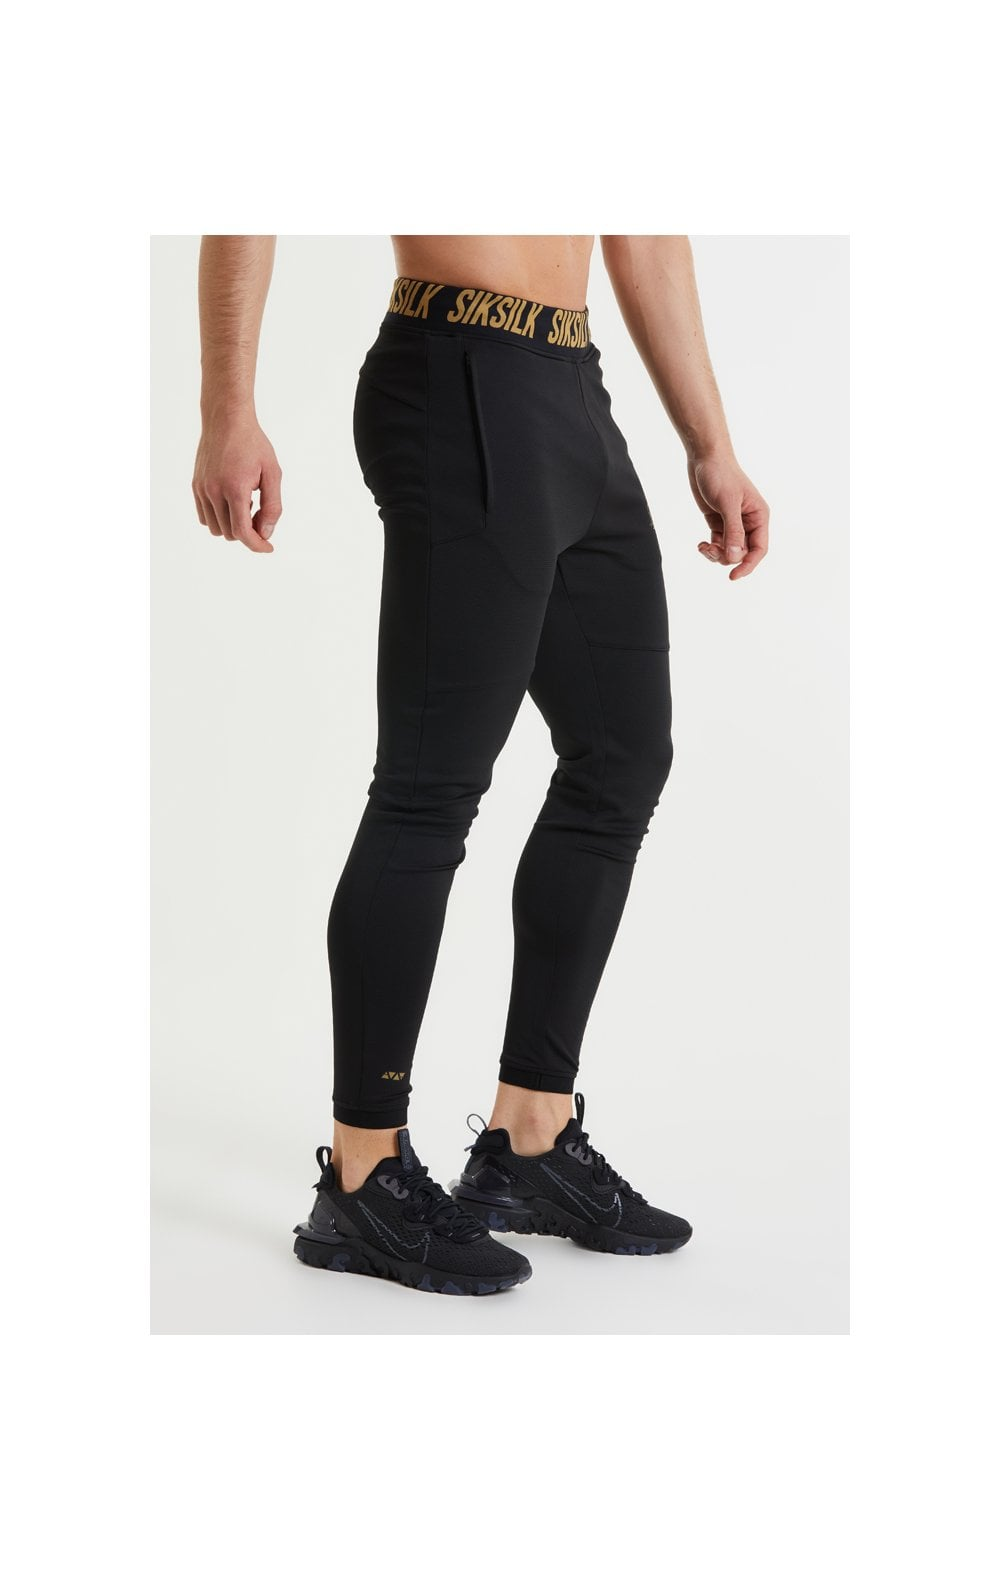 SikSilk Performance Agility Pants – Black & Gold (4)